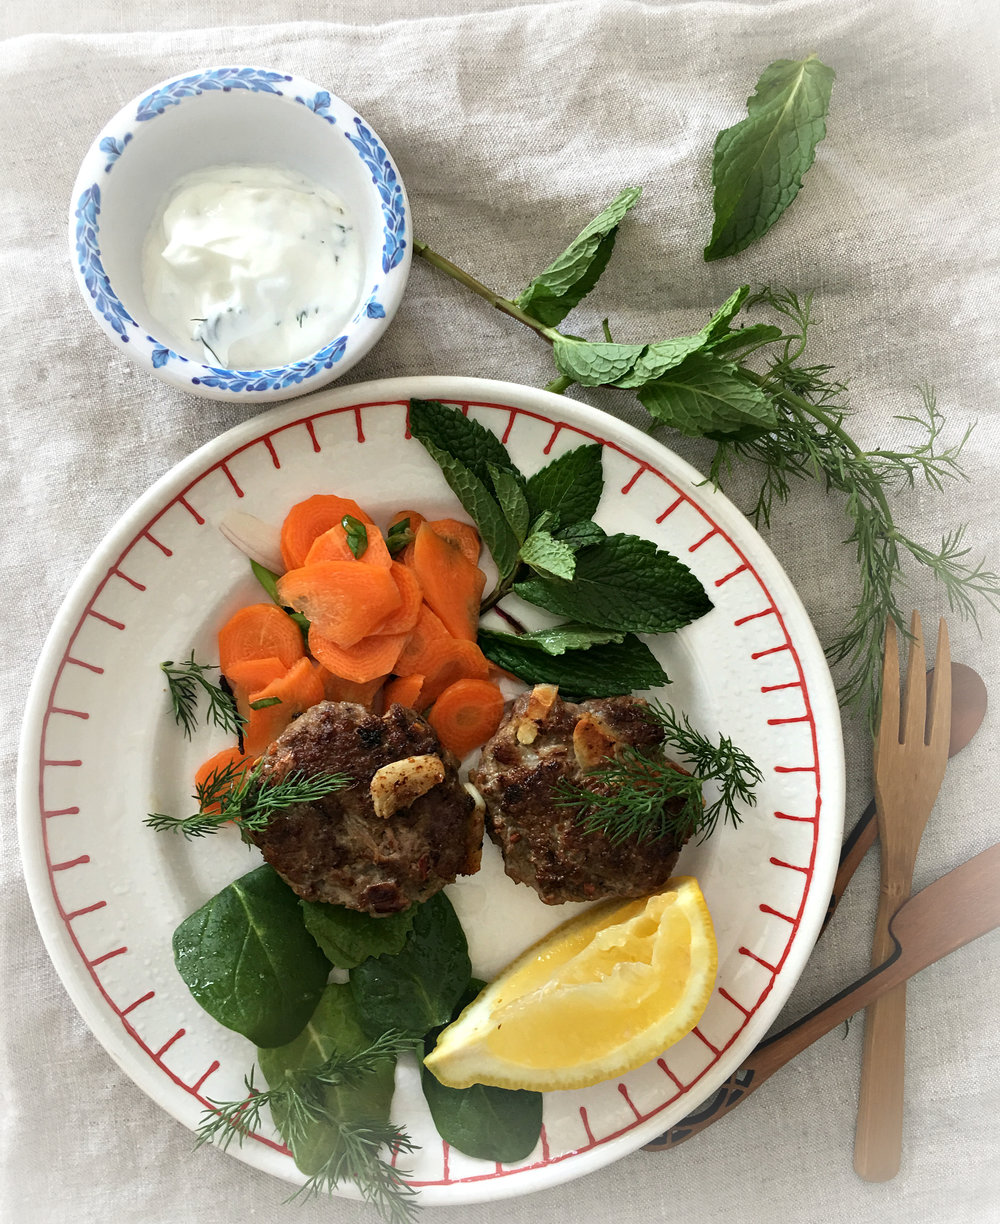 ©Lamb Patties on Plate by Dena T Bray.jpg